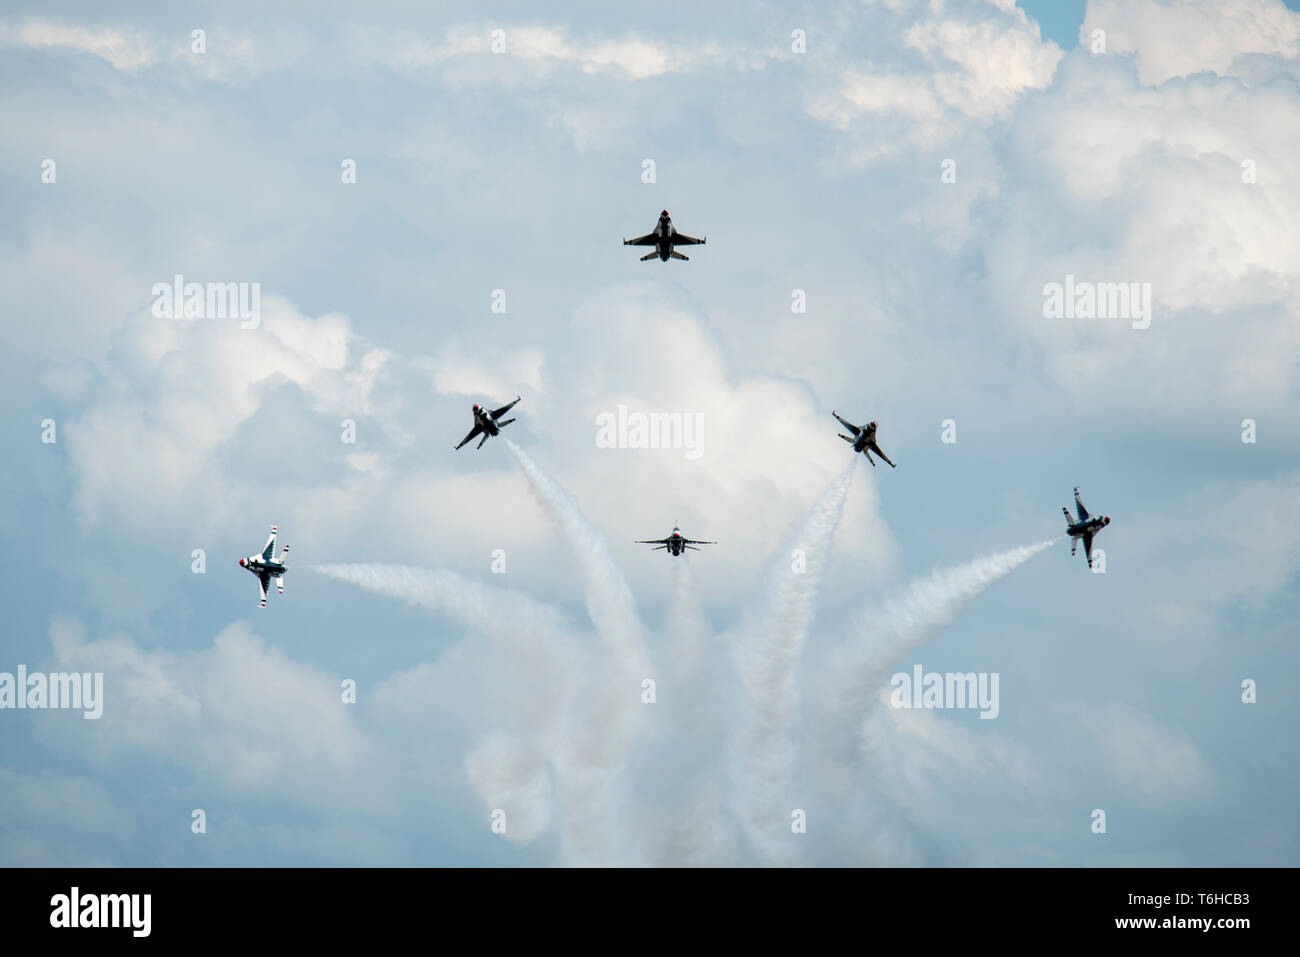 The Thunderbirds perform the Delta Burst maneuver during the Wings Over Wayne Airshow, April XX, 2019, at Seymour Johnson Air Force Base, North Carolina. The Thunderbirds demonstrated the versatility of the F-16 Fighting Falcon by performing aerial acrobatics, precision formations and high-speed passes during their performance. (U.S. Air Force photo by Senior Airman Miranda A. Loera) - Stock Image